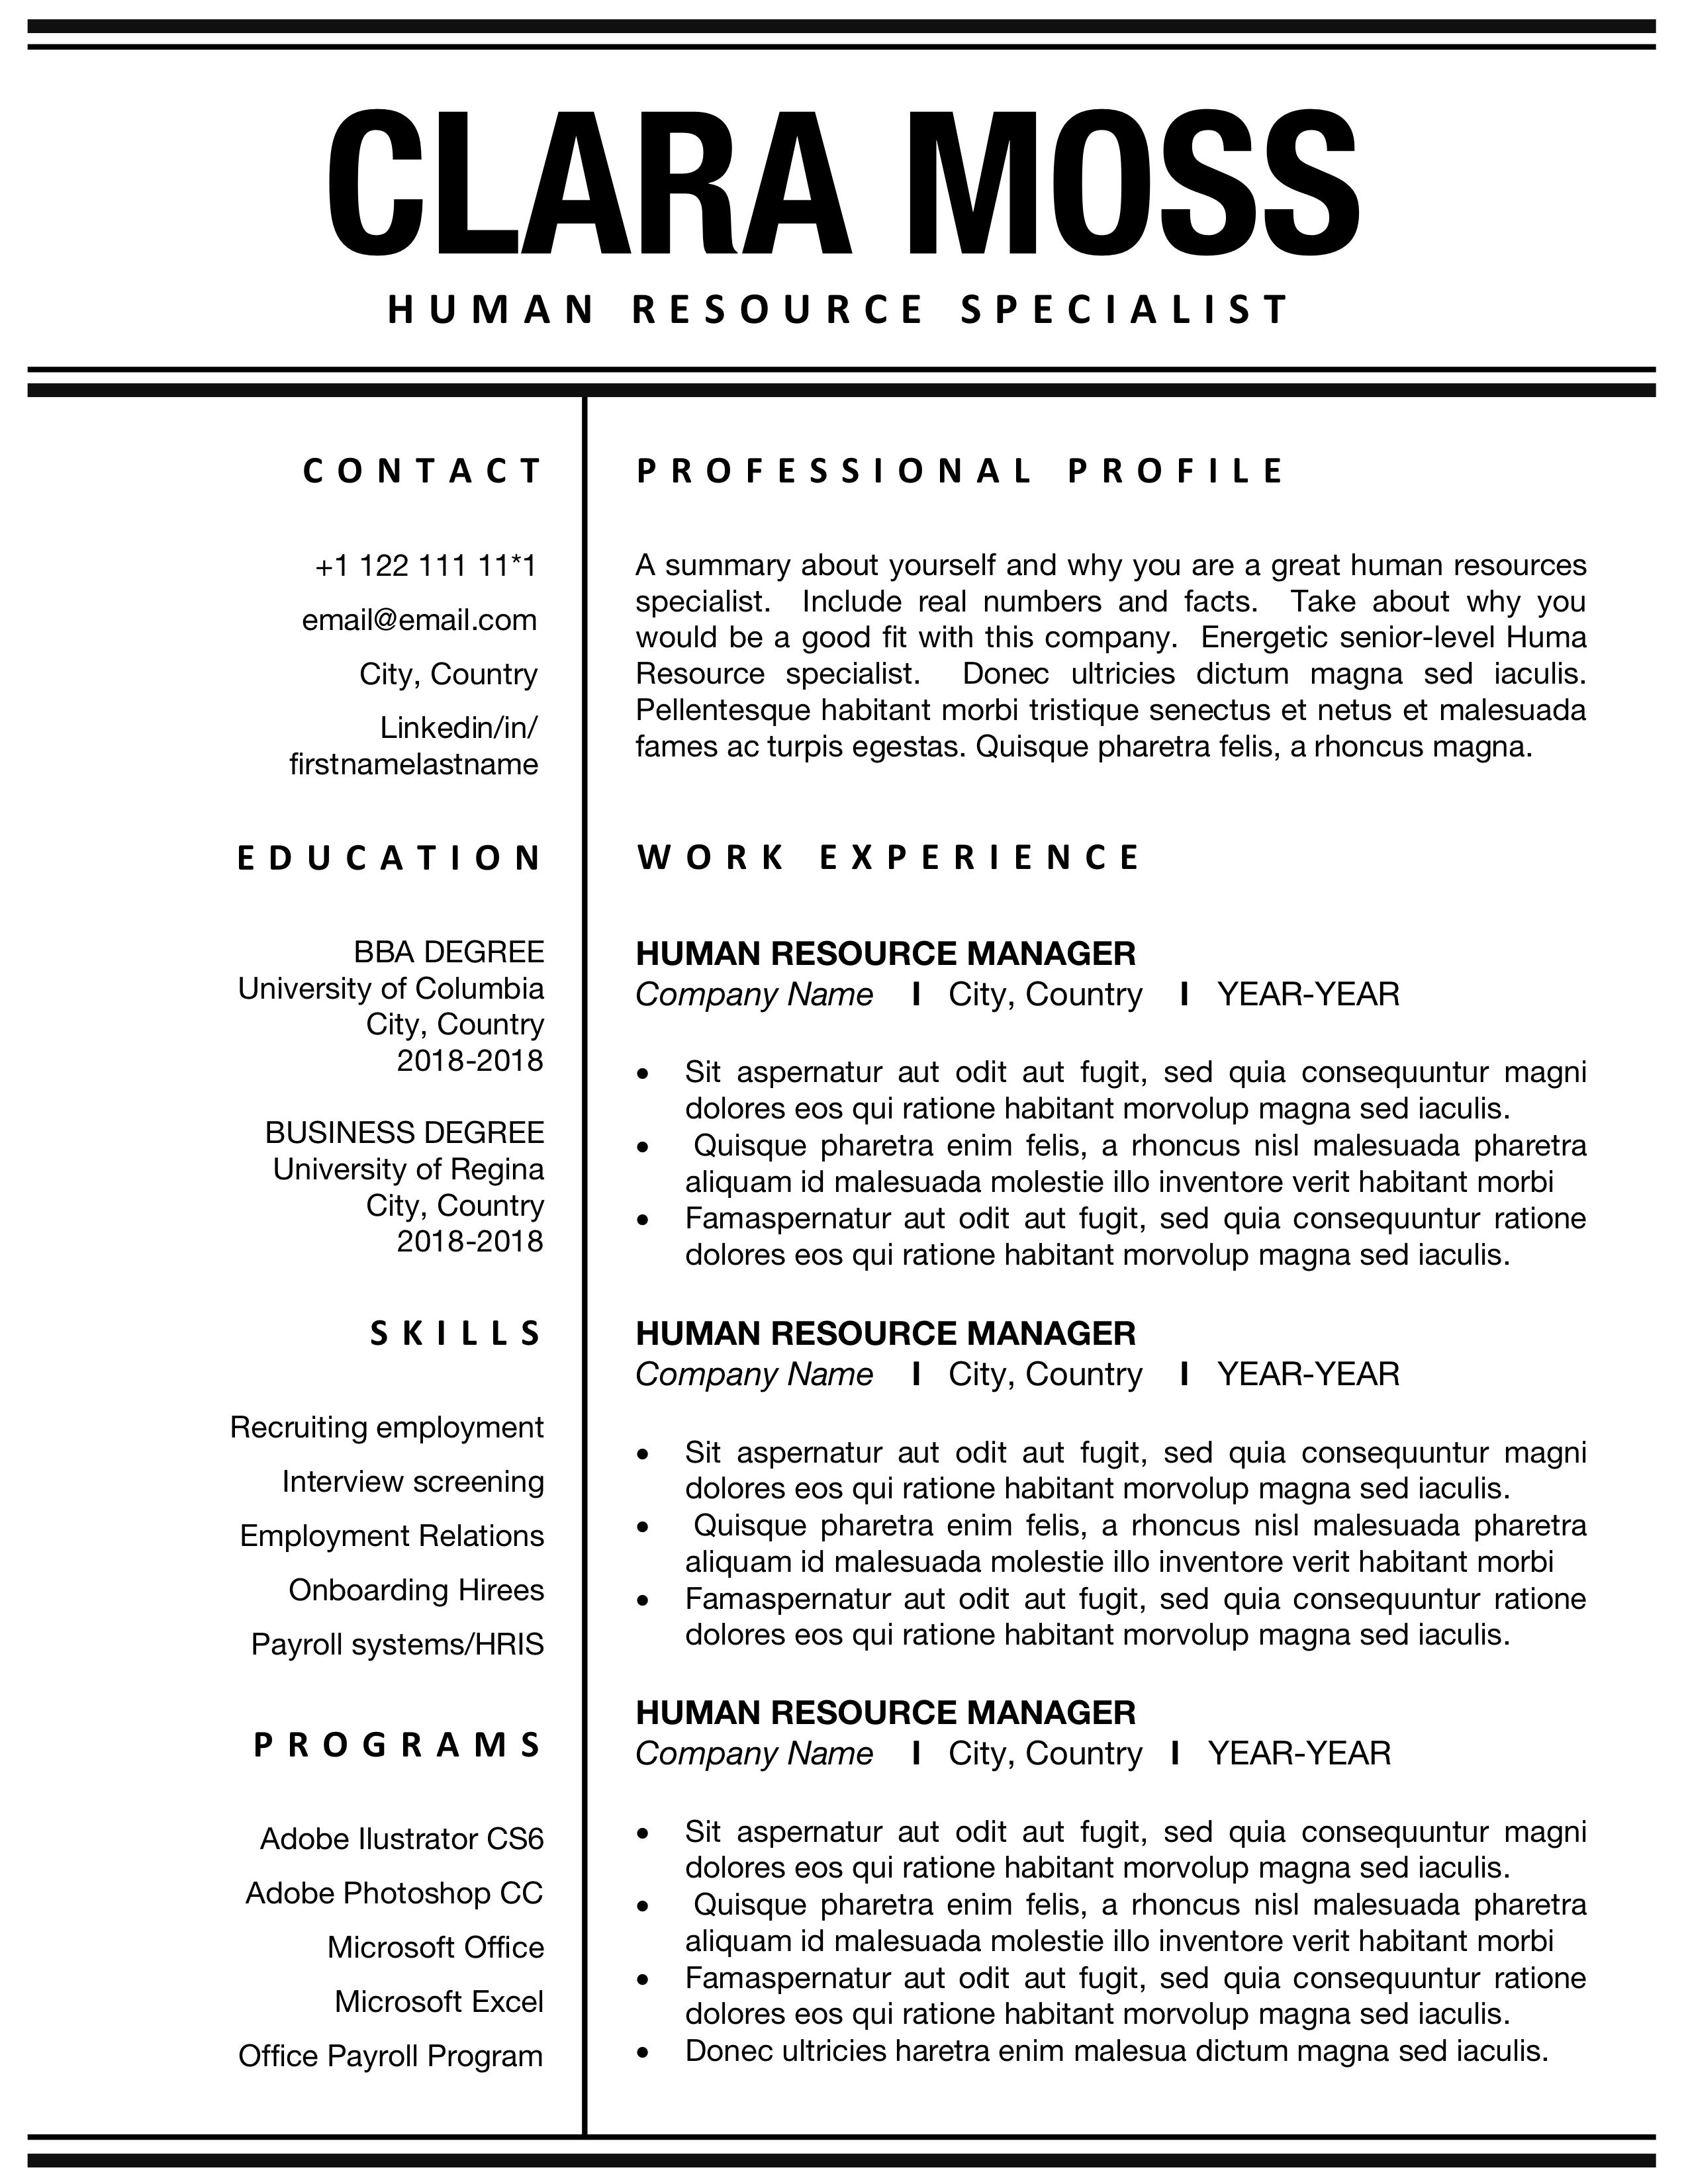 Professional Resume For Word Mac Pages Cv Template Bundle With Cover Letter 1 2 3 Page Resumes For Business Office Hr No Experience Human Resources Resume Student Resume Template Human Resources Jobs